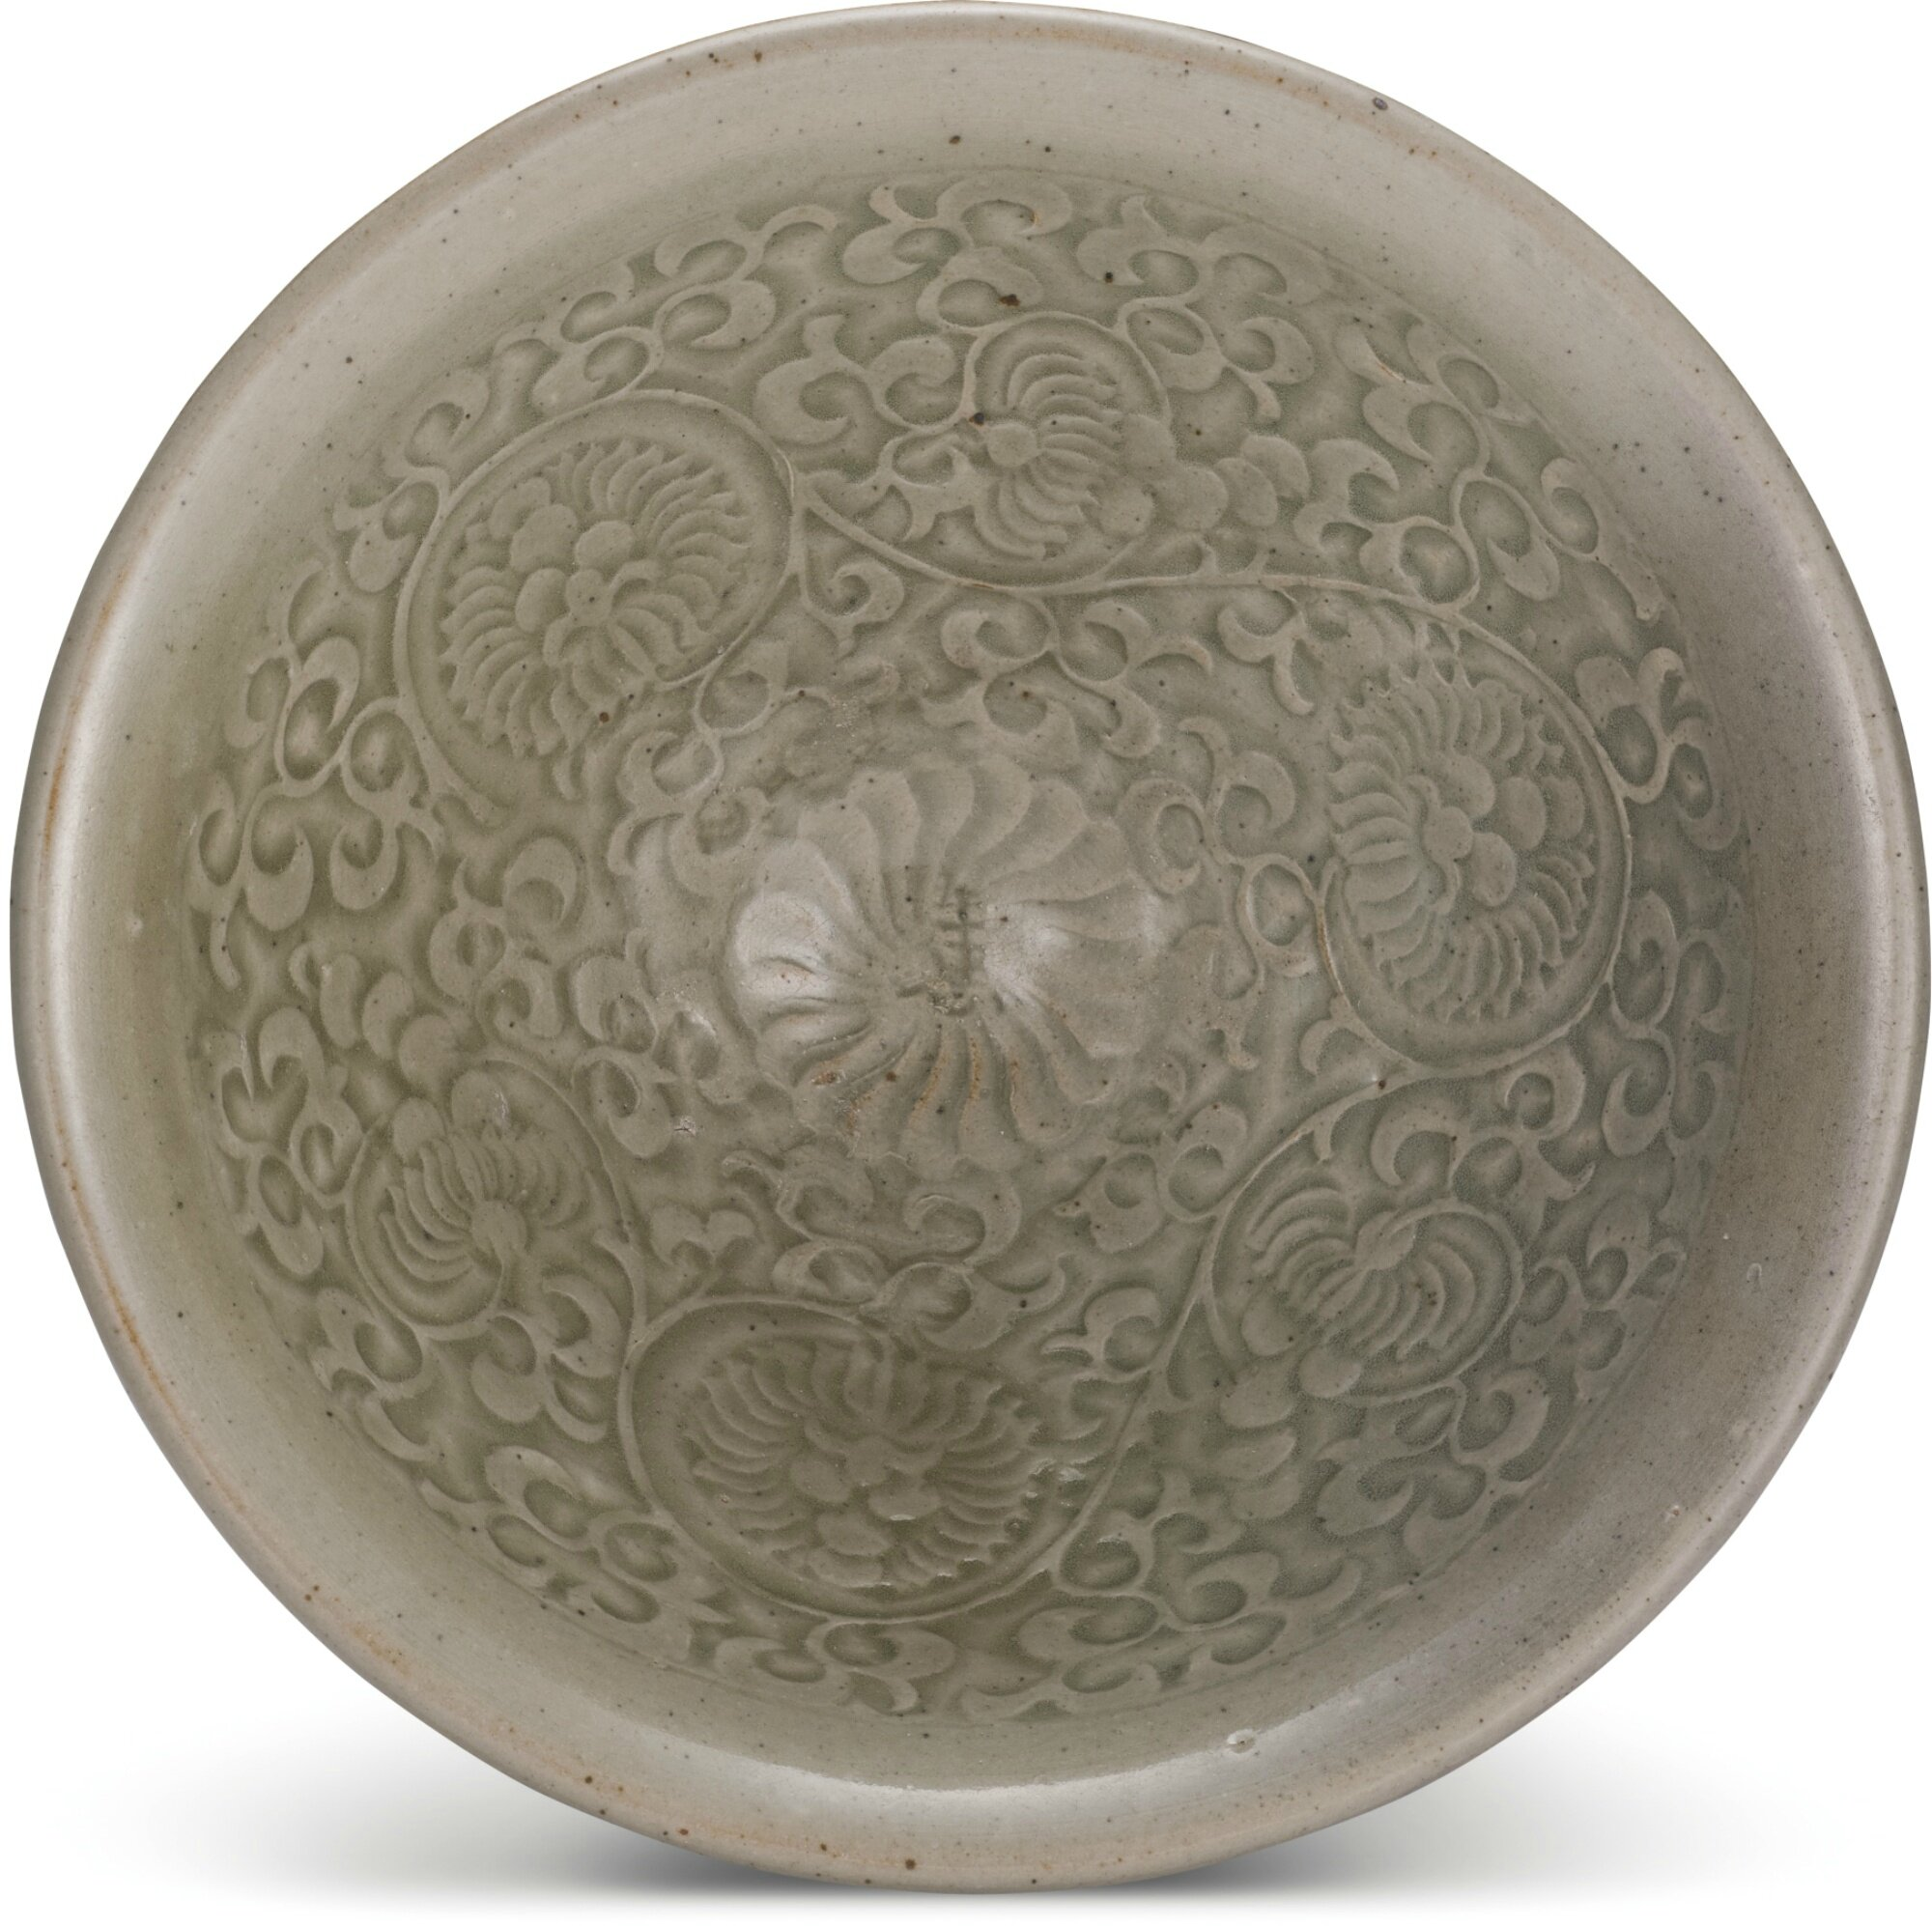 A rare inscribed 'Yaozhou' 'floral' bowl, Northern Song dynasty (960-1127)